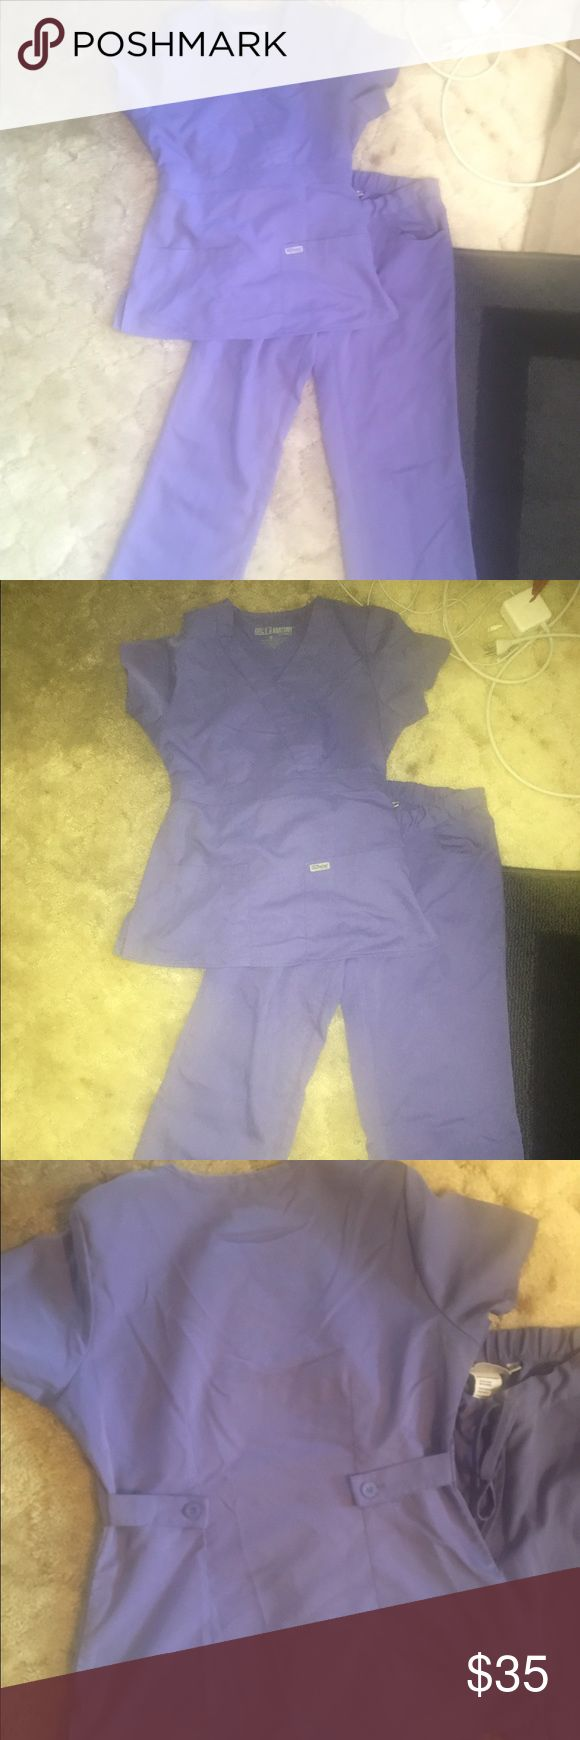 Grey's anatomy scrubs Set of small light purple Grey's anatomy scrubs. In great shape. Regular length. Other